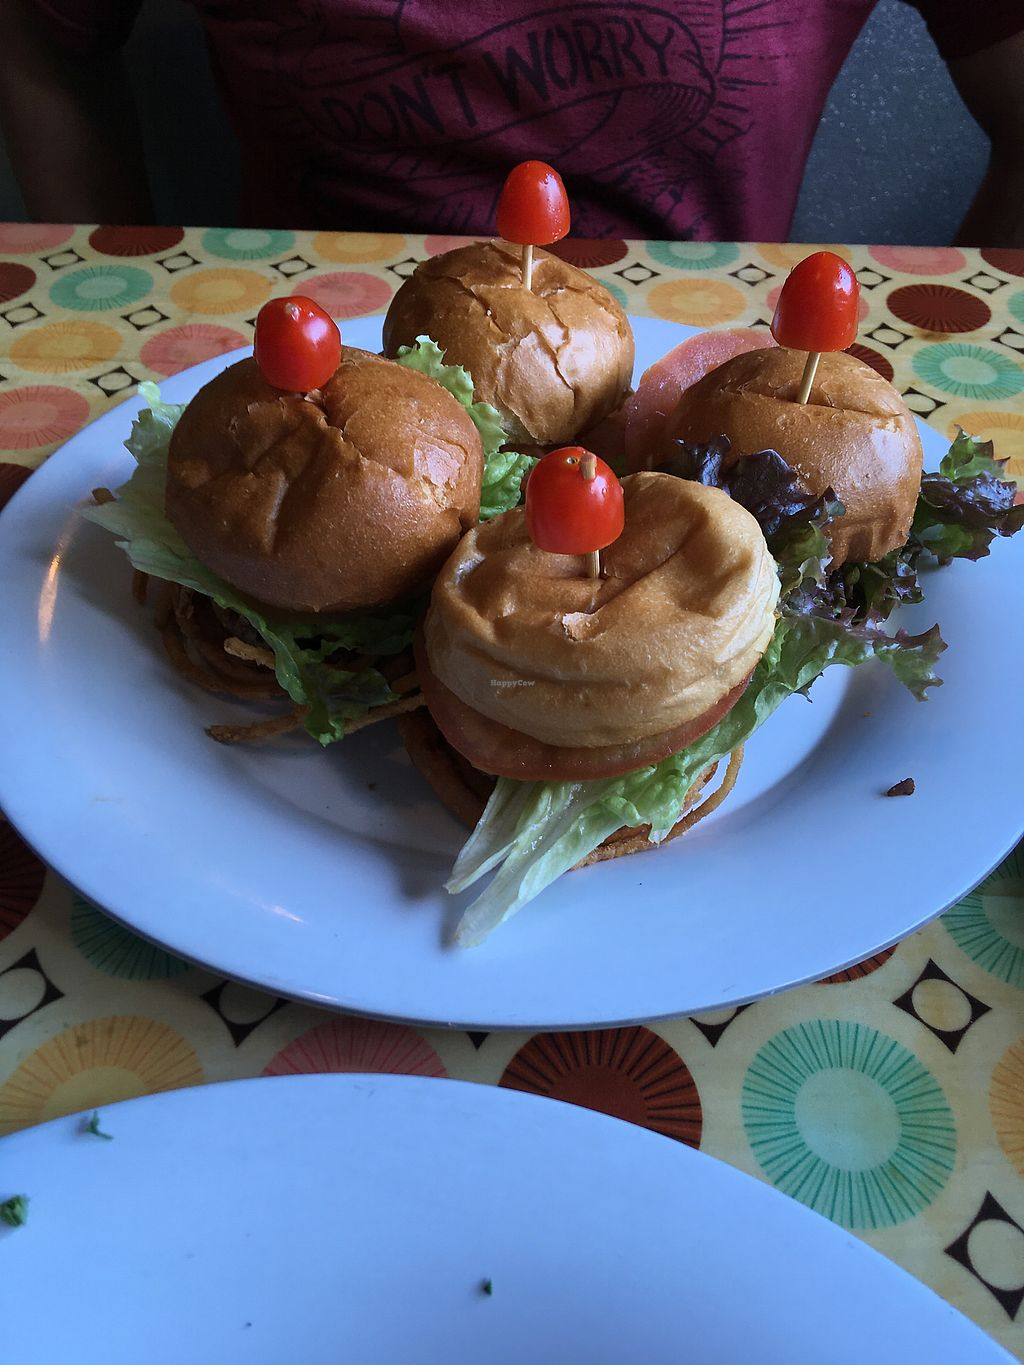 "Photo of Saturn Cafe  by <a href=""/members/profile/dvcucsc"">dvcucsc</a> <br/>Appetizer sliders.  We loved the cowboy sliders with shoestring onion rings <br/> February 6, 2018  - <a href='/contact/abuse/image/23202/355512'>Report</a>"